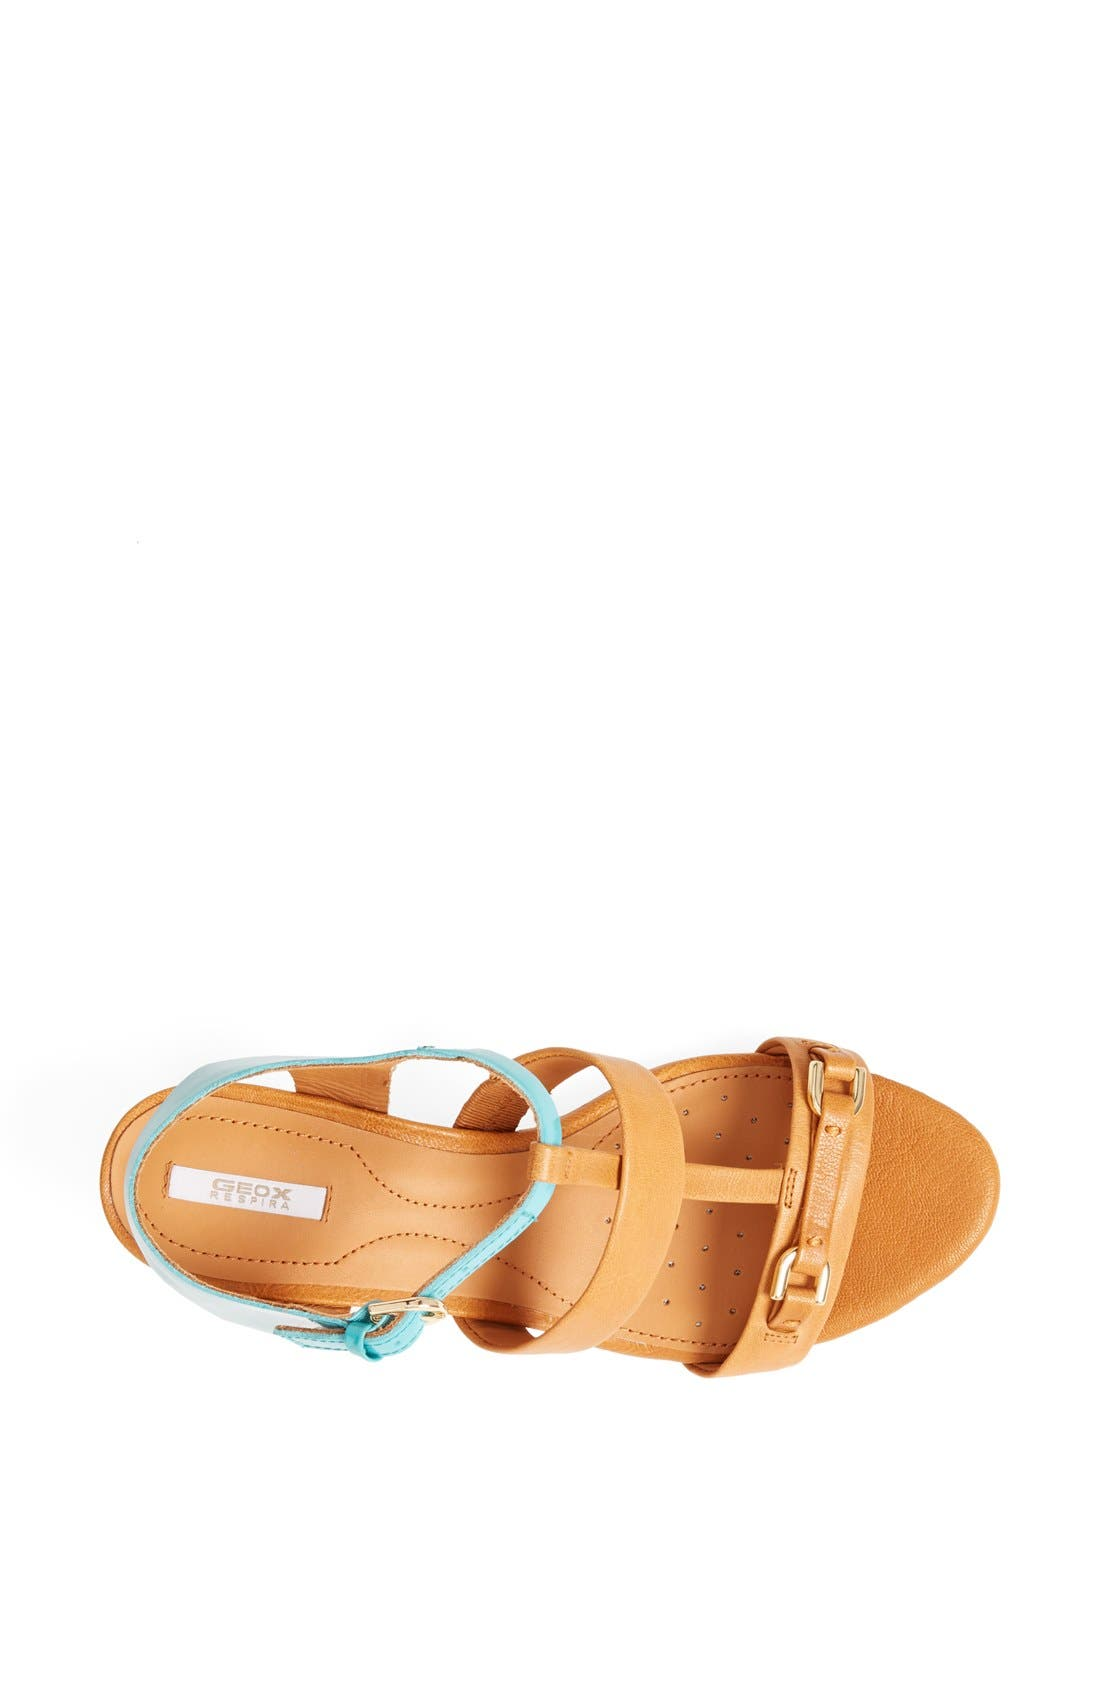 GEOX,                             'Lupe' Leather Sandal,                             Alternate thumbnail 2, color,                             258